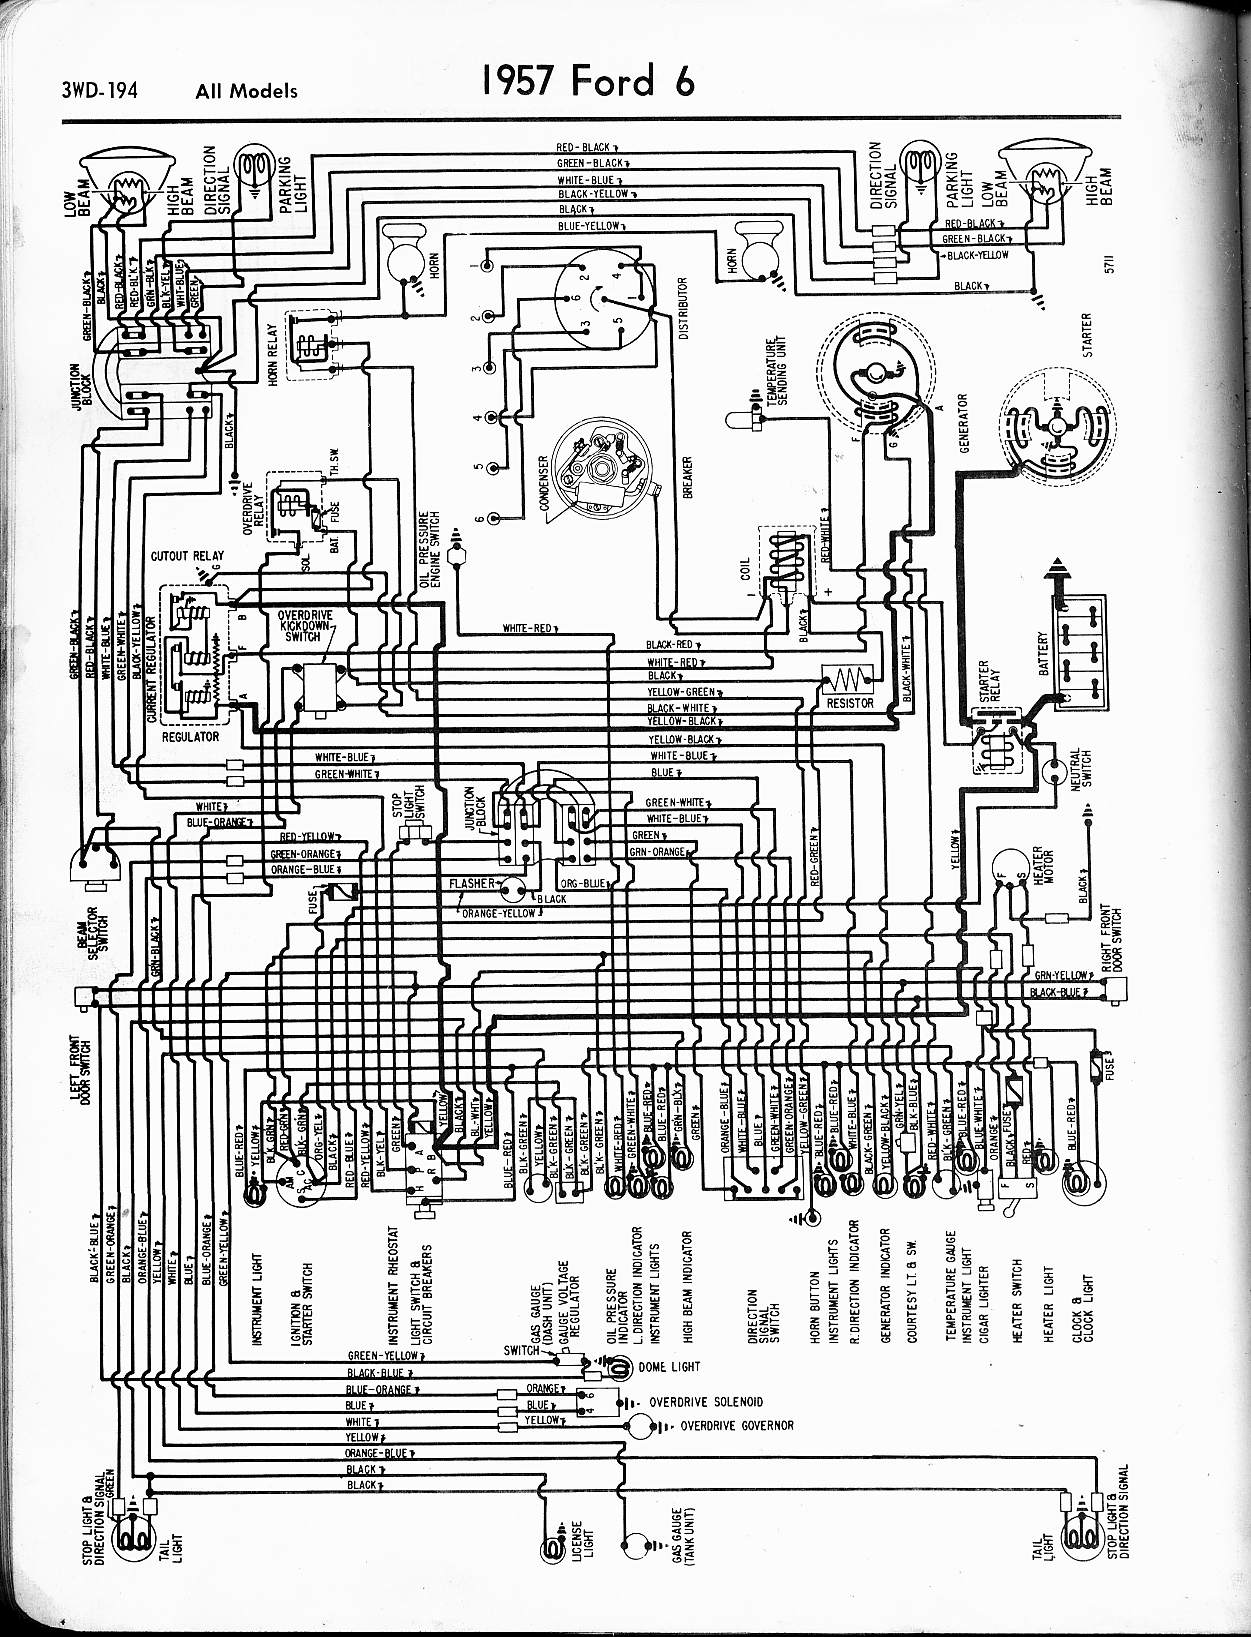 hight resolution of 1955 ford wiring harness diagrams wiring diagram1955 ford wiring harness wiring diagram article review1955 ford wiring